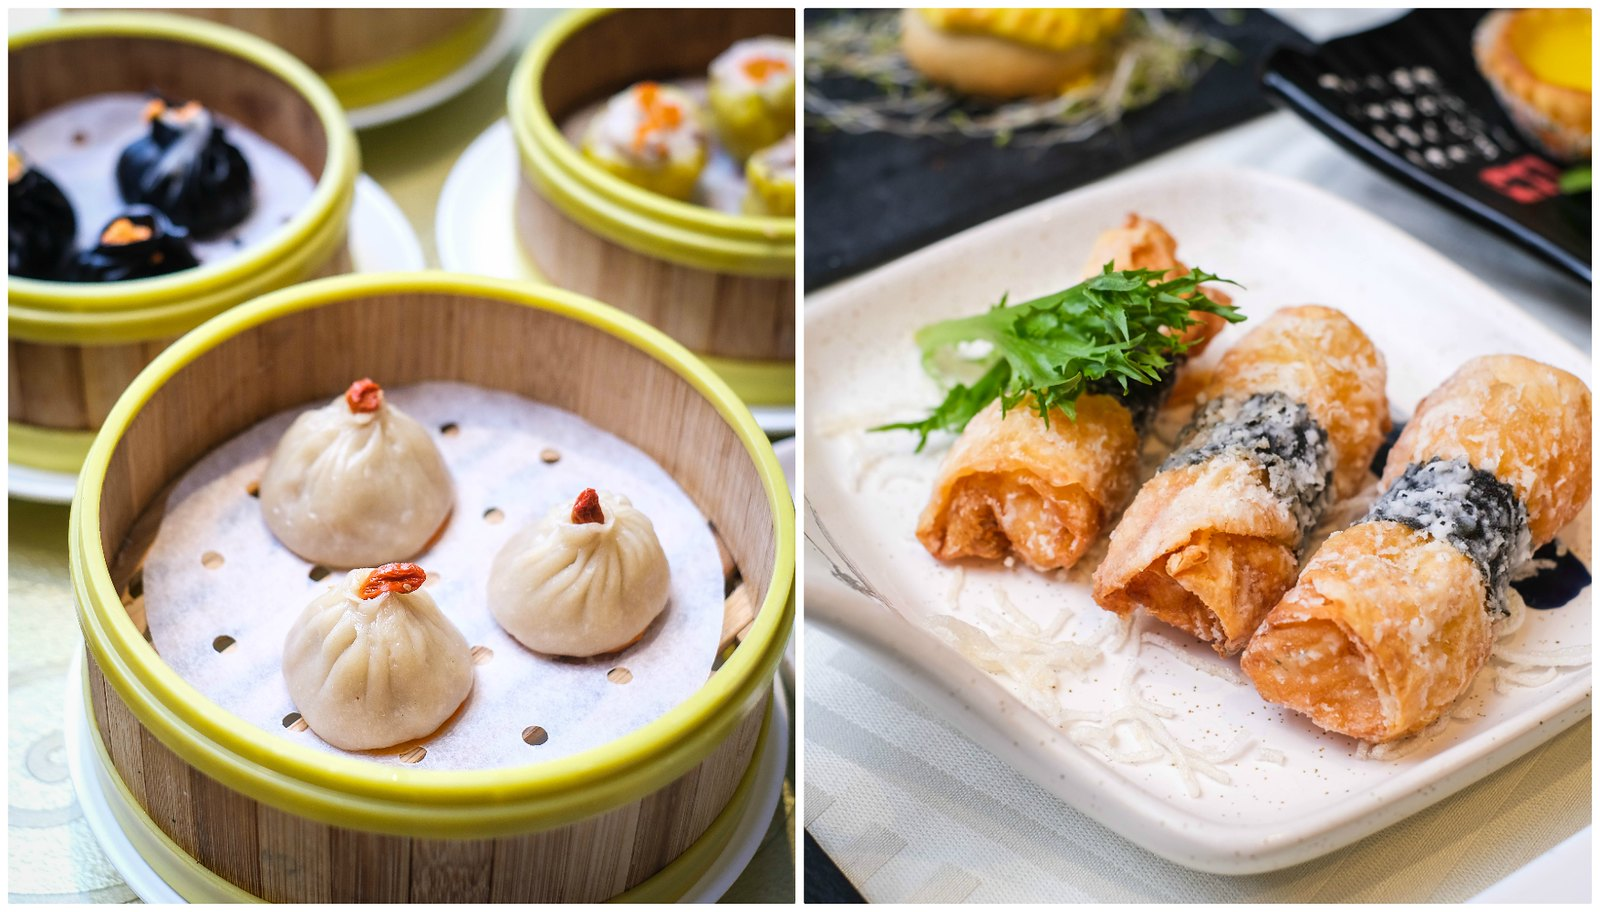 Dimsumcollage1